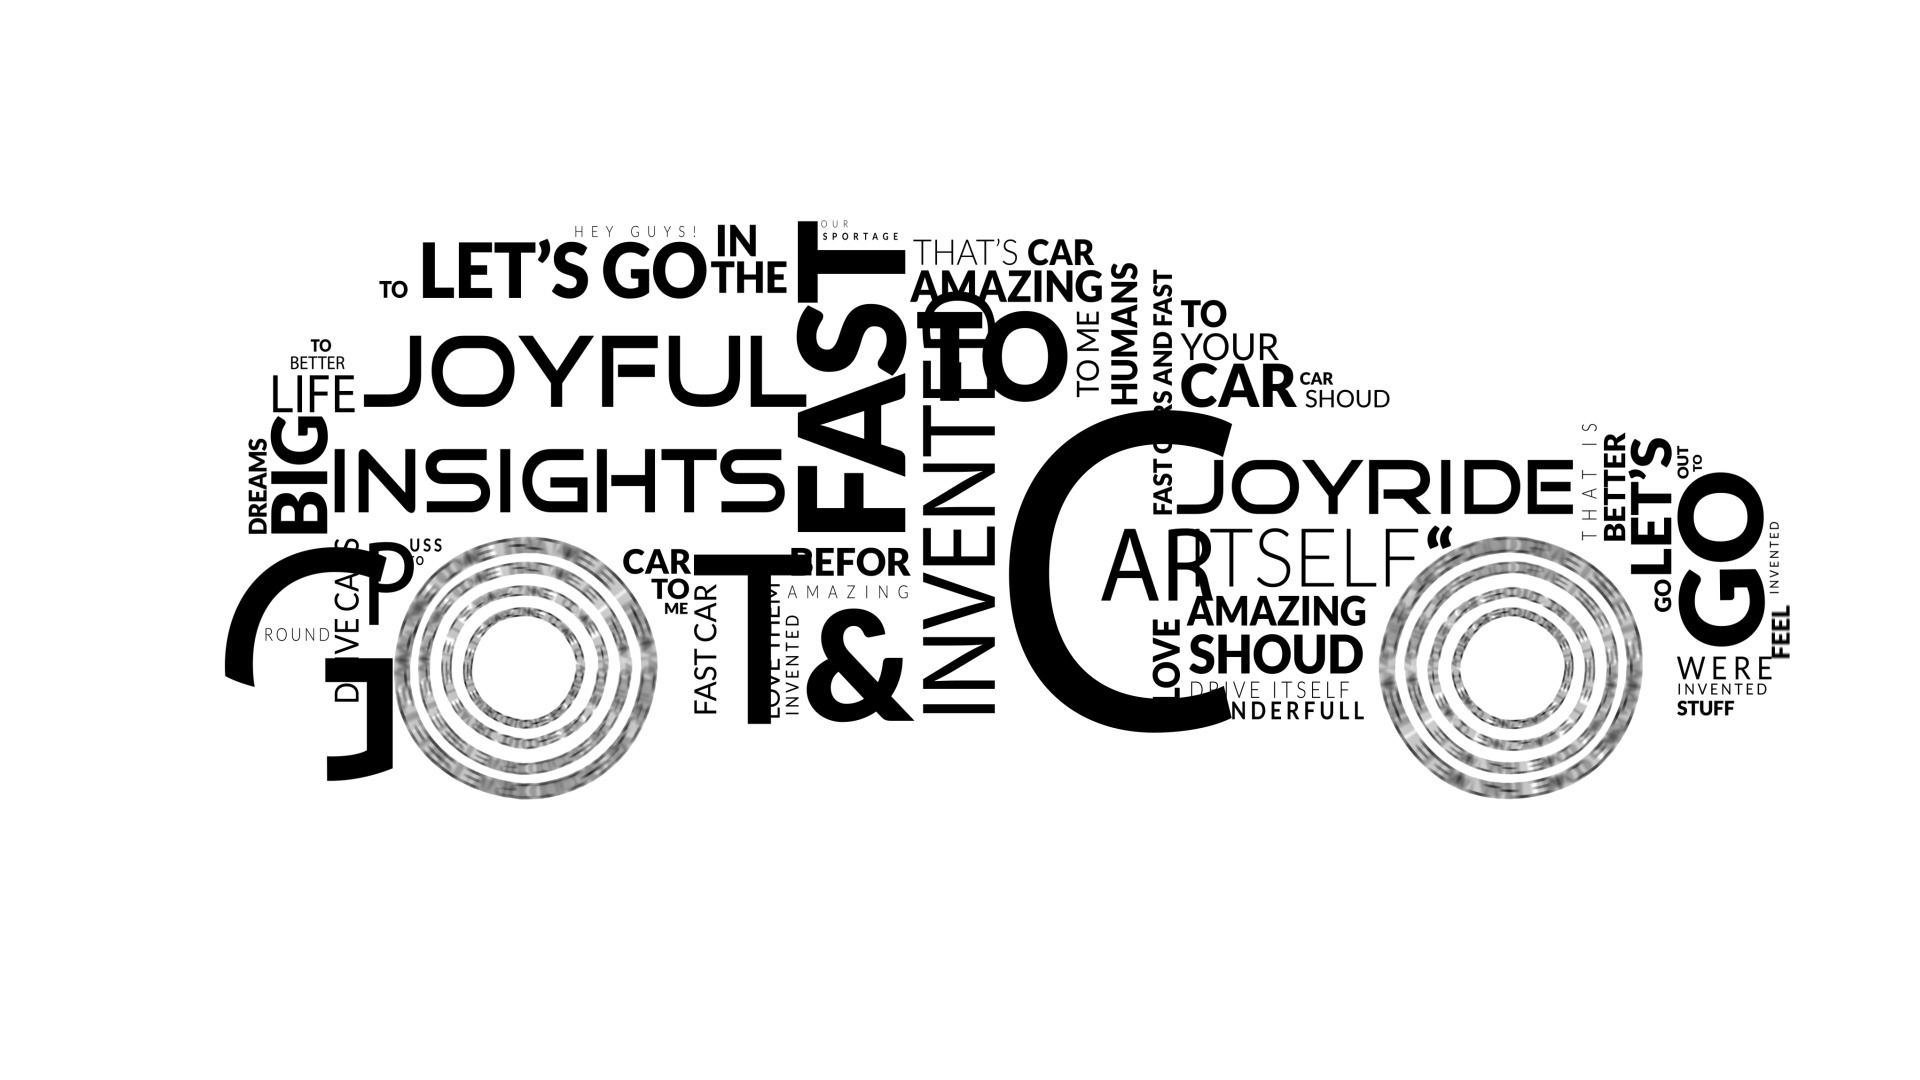 JOYFUL INSIGHTS – Thought provoking questions and answers – EnFellowship Magazine